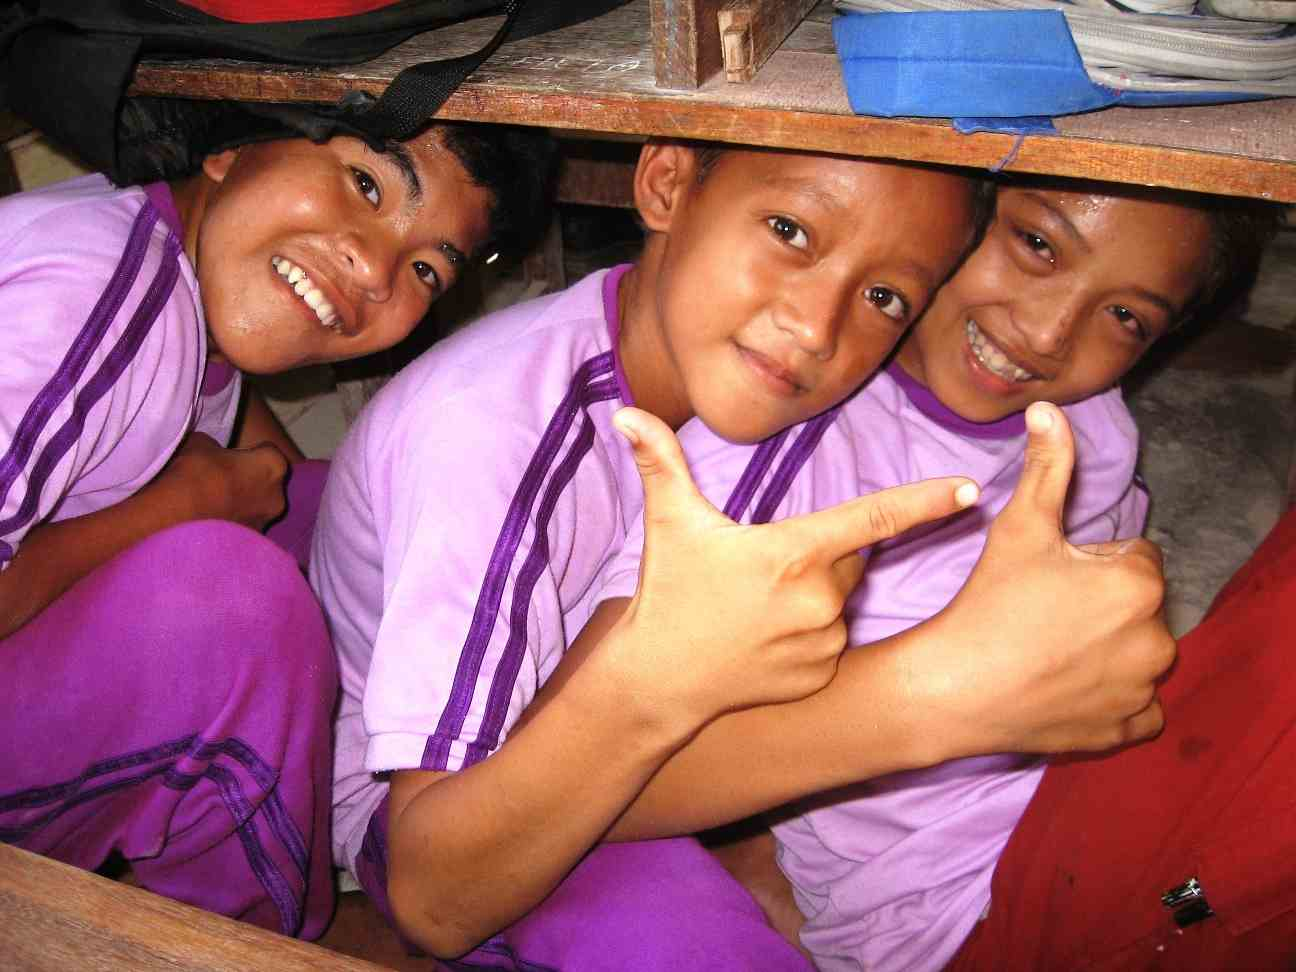 School children in Nias, Indonesia, are taught to get under tables and cover their heads after an earthquake. Photo © SurfAid